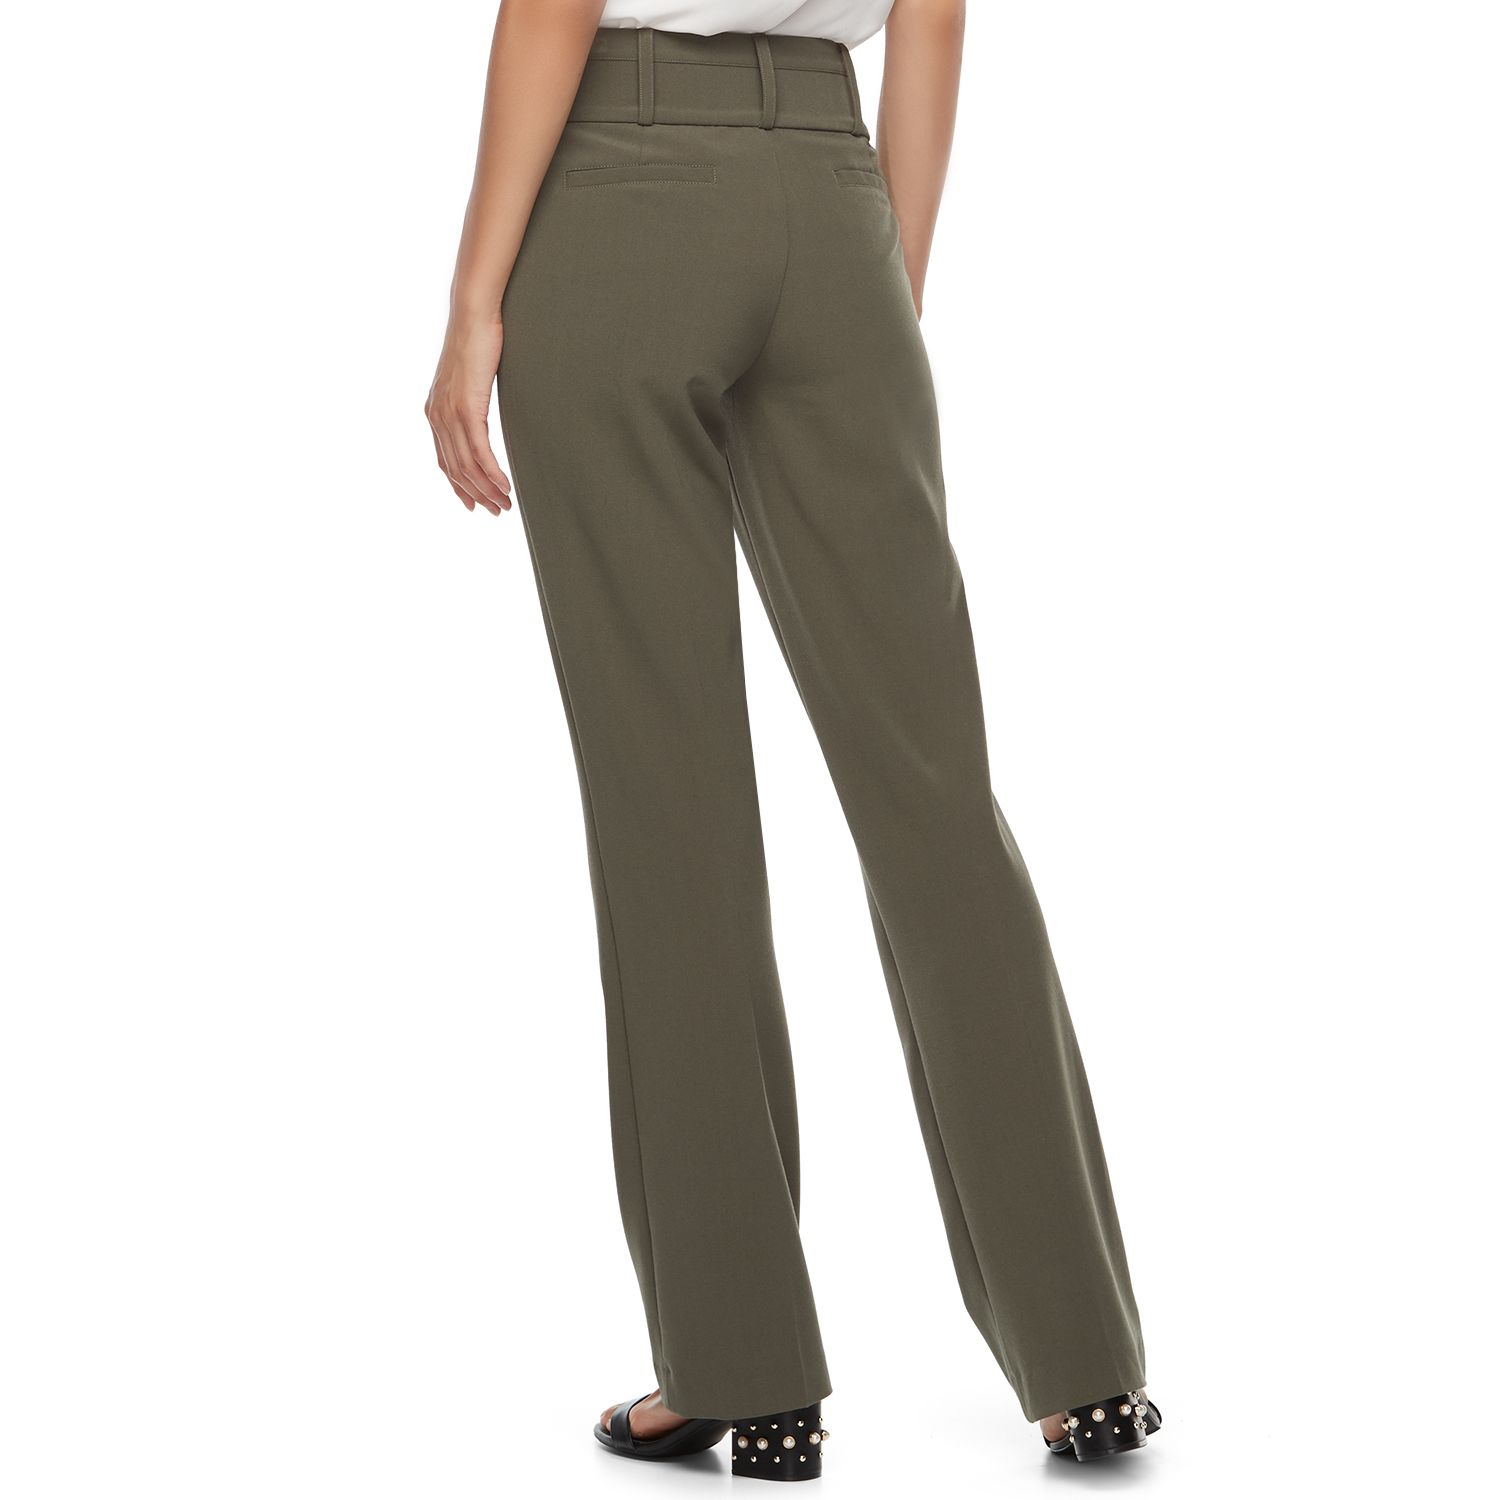 6b5004ca700 Juniors Candie's Pants - Bottoms, Clothing   Kohl's